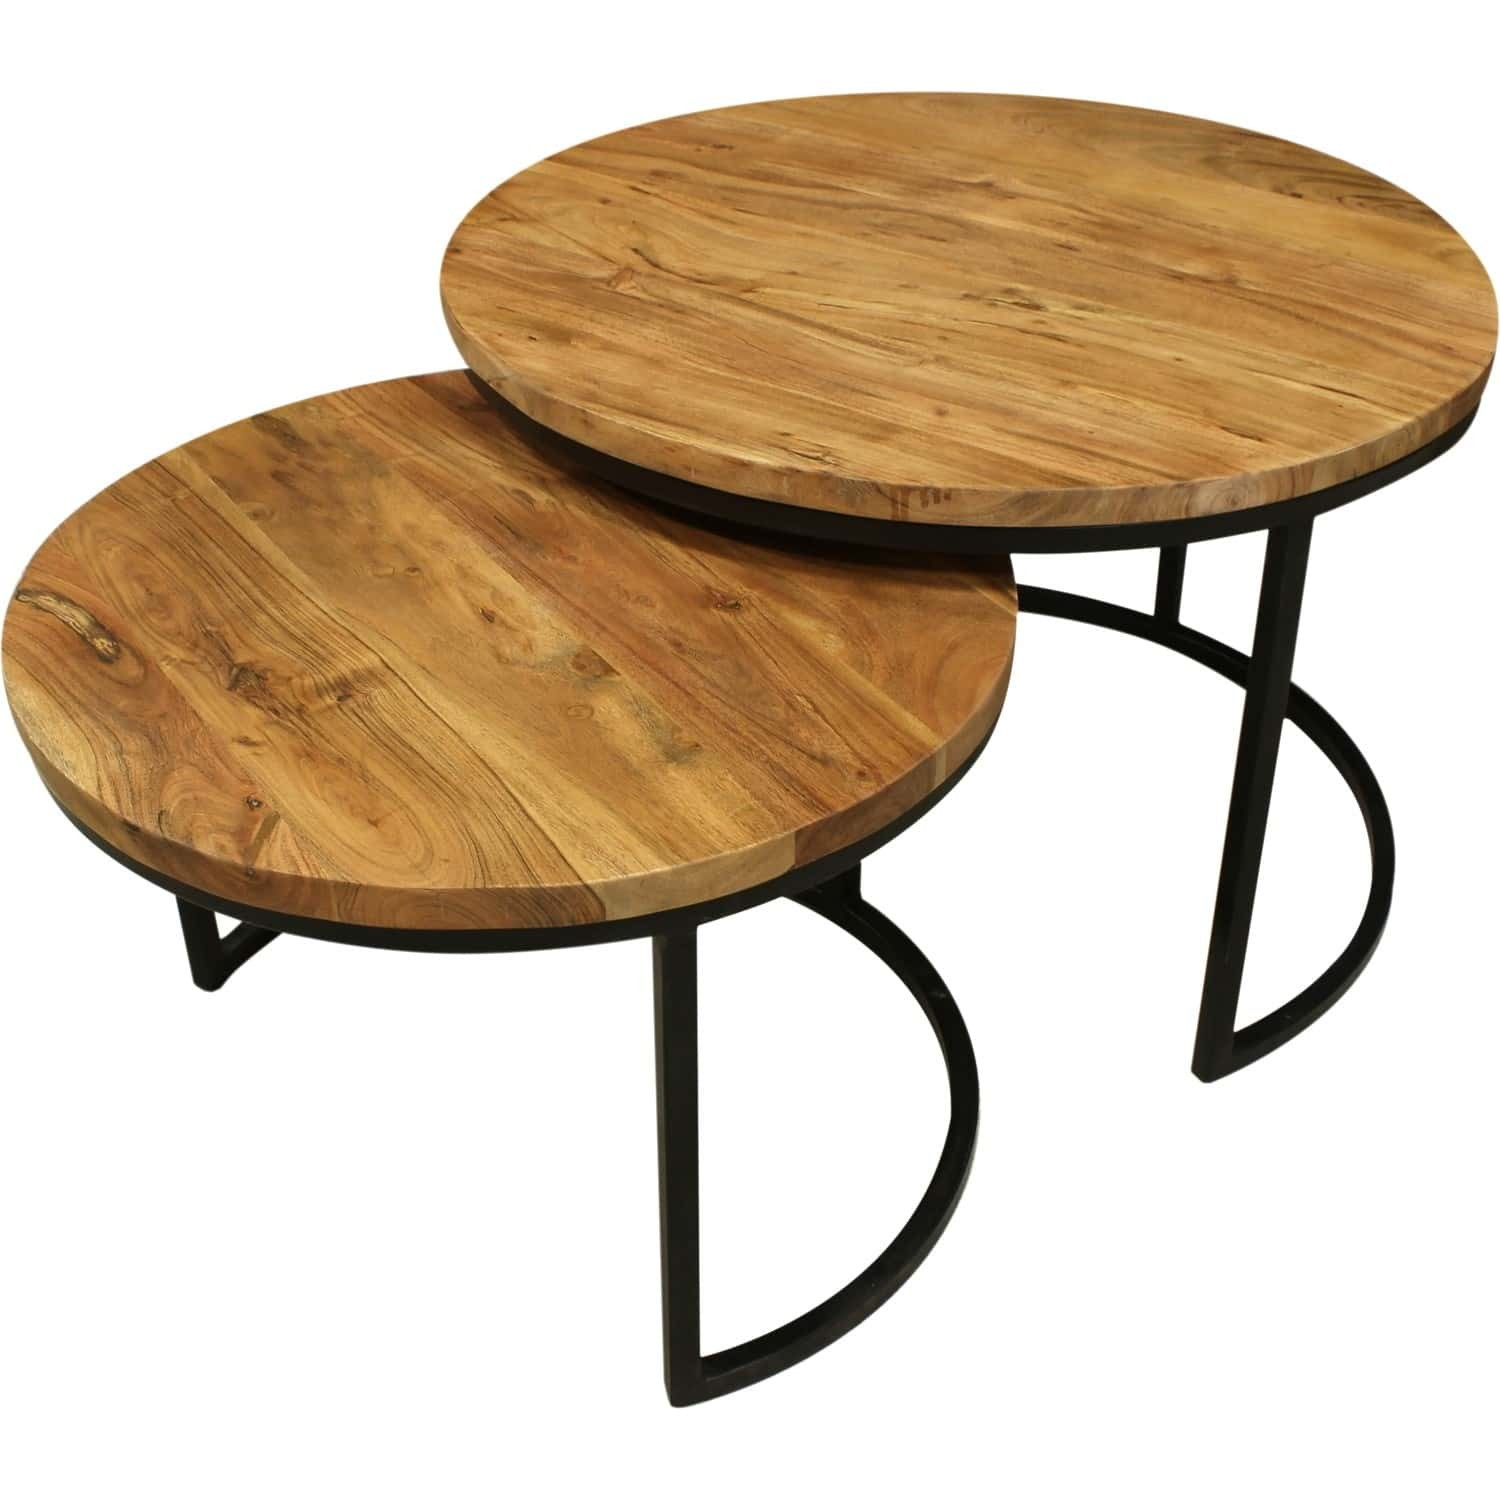 Tables basses gigognes bois et metal for Table gigogne bois